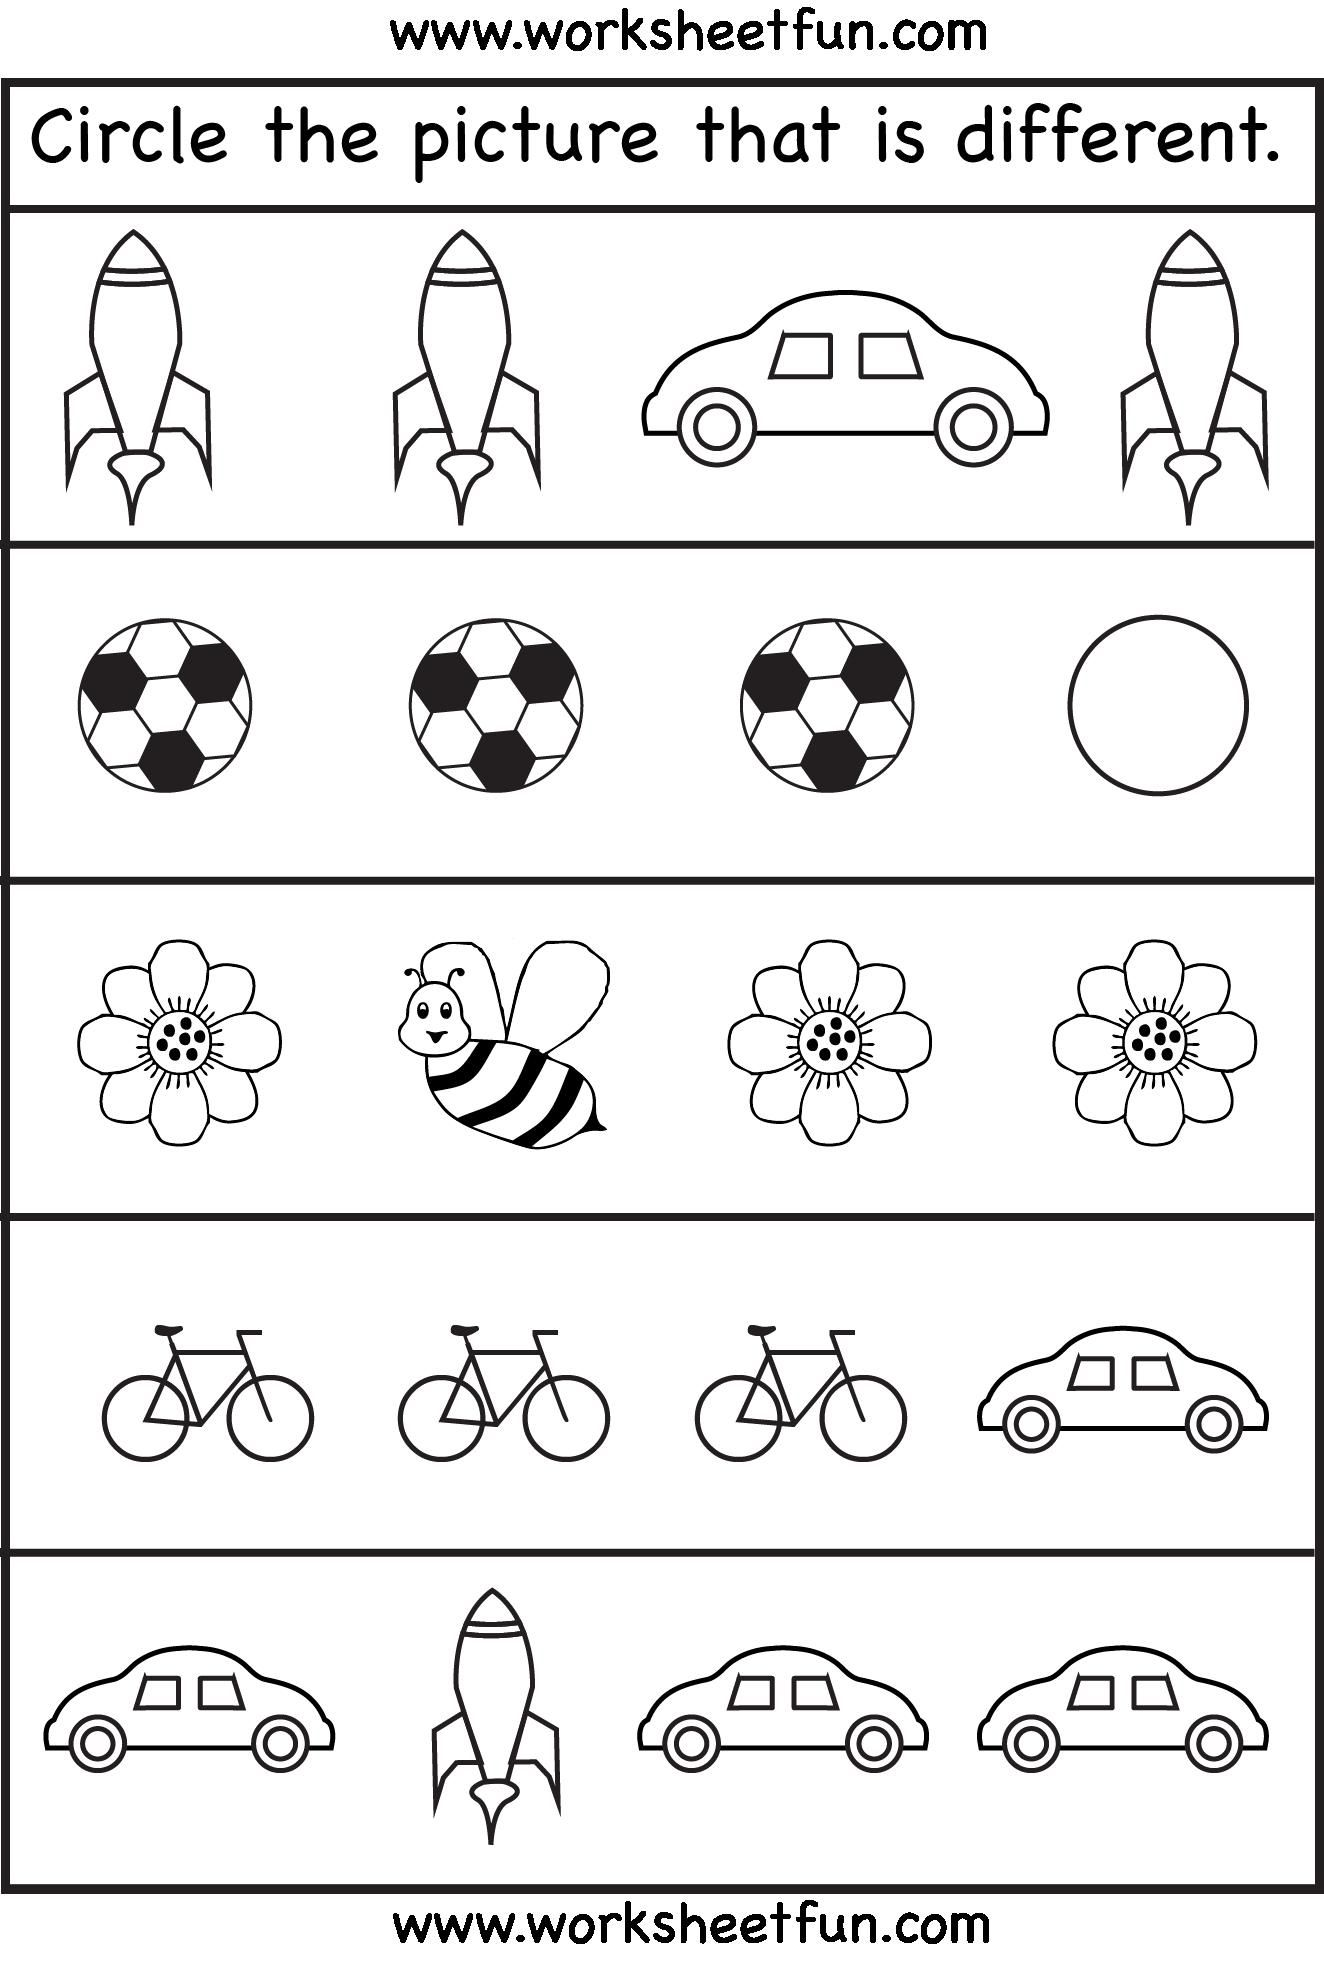 51 Printable Worksheets For Nursery In